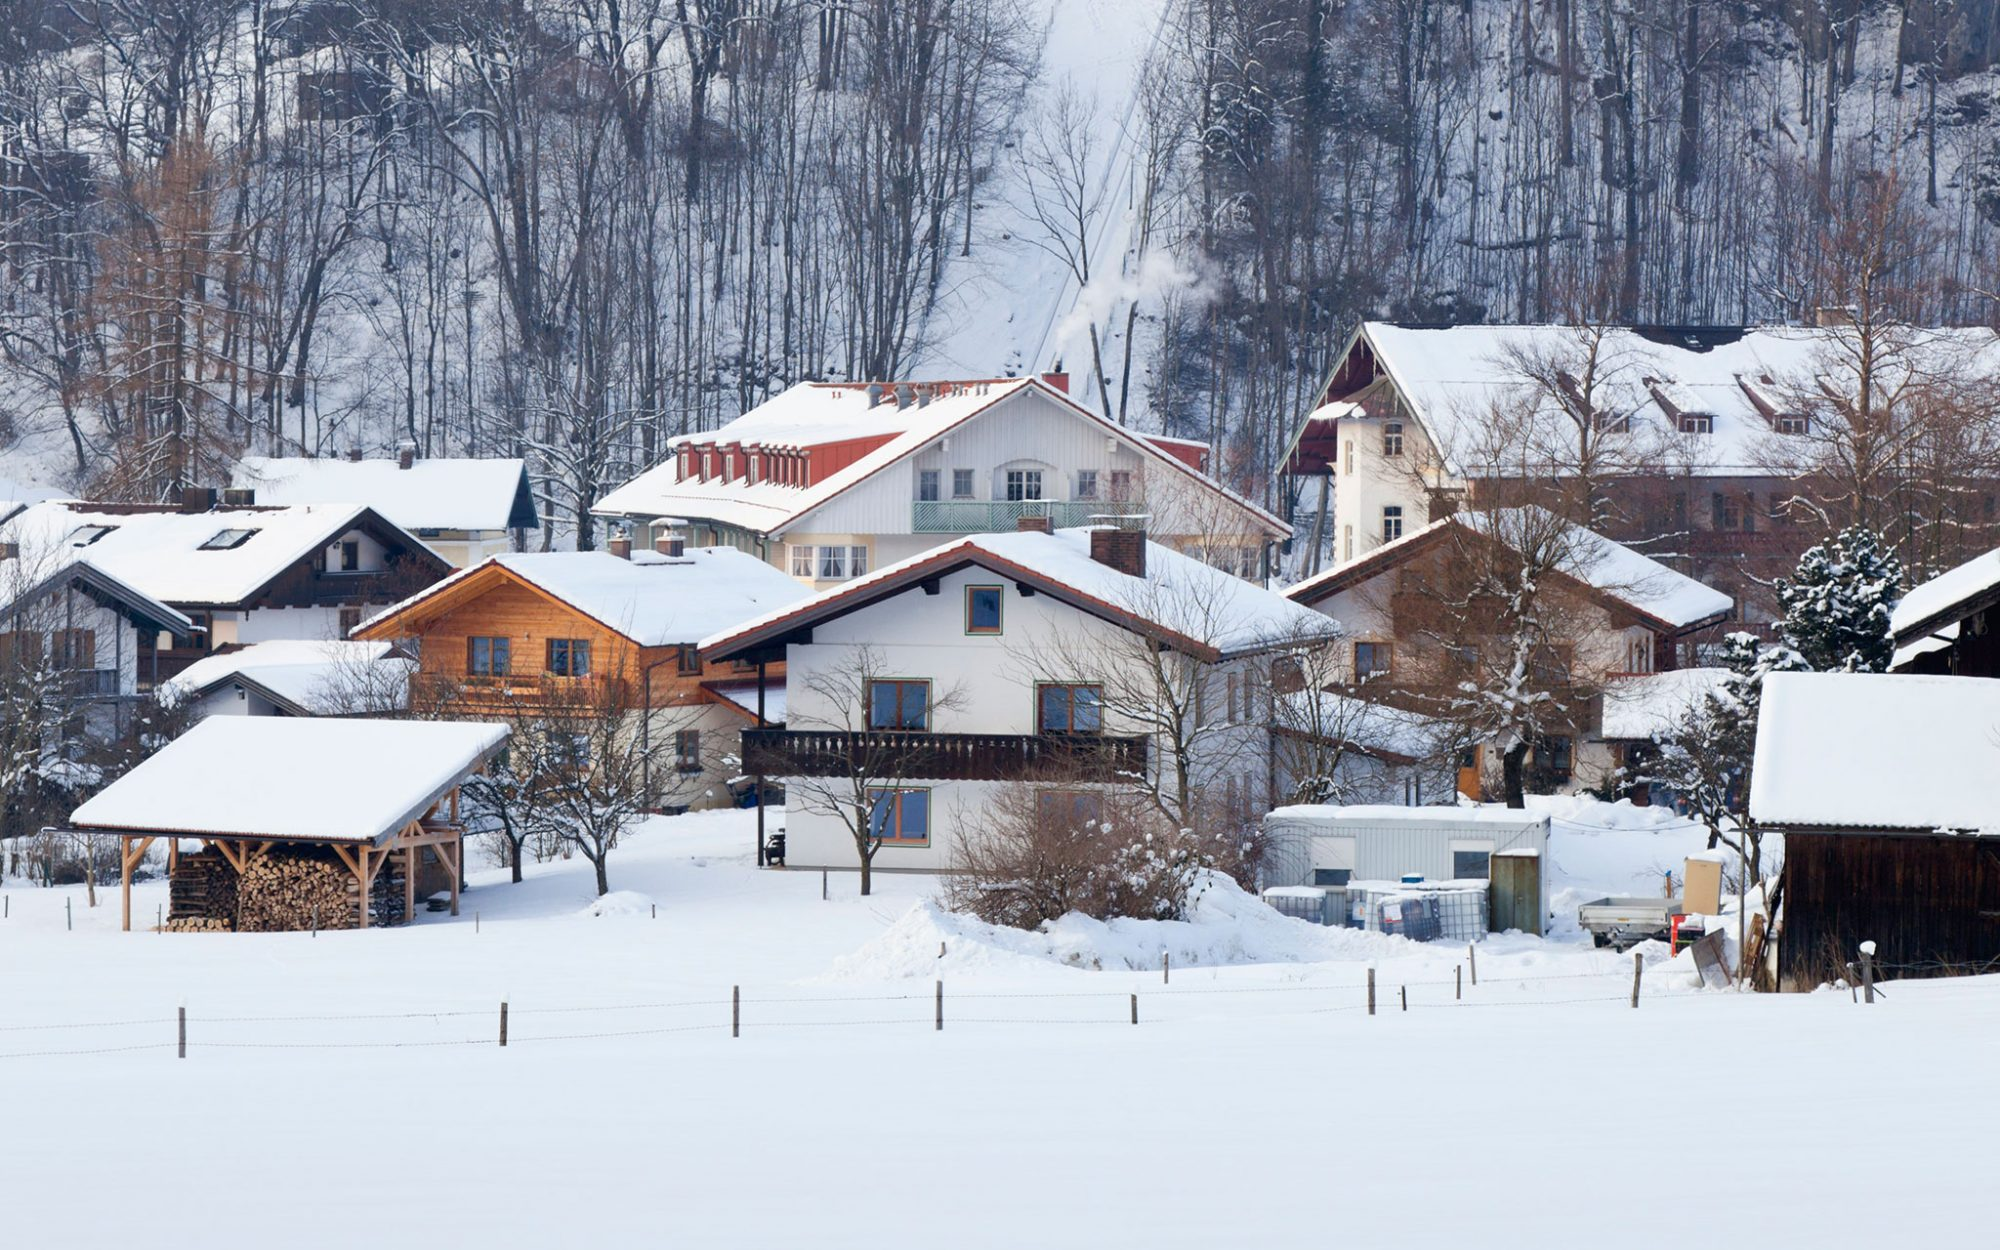 Europe's Best Winter Getaways: Aschau im Chiemgau, Germany